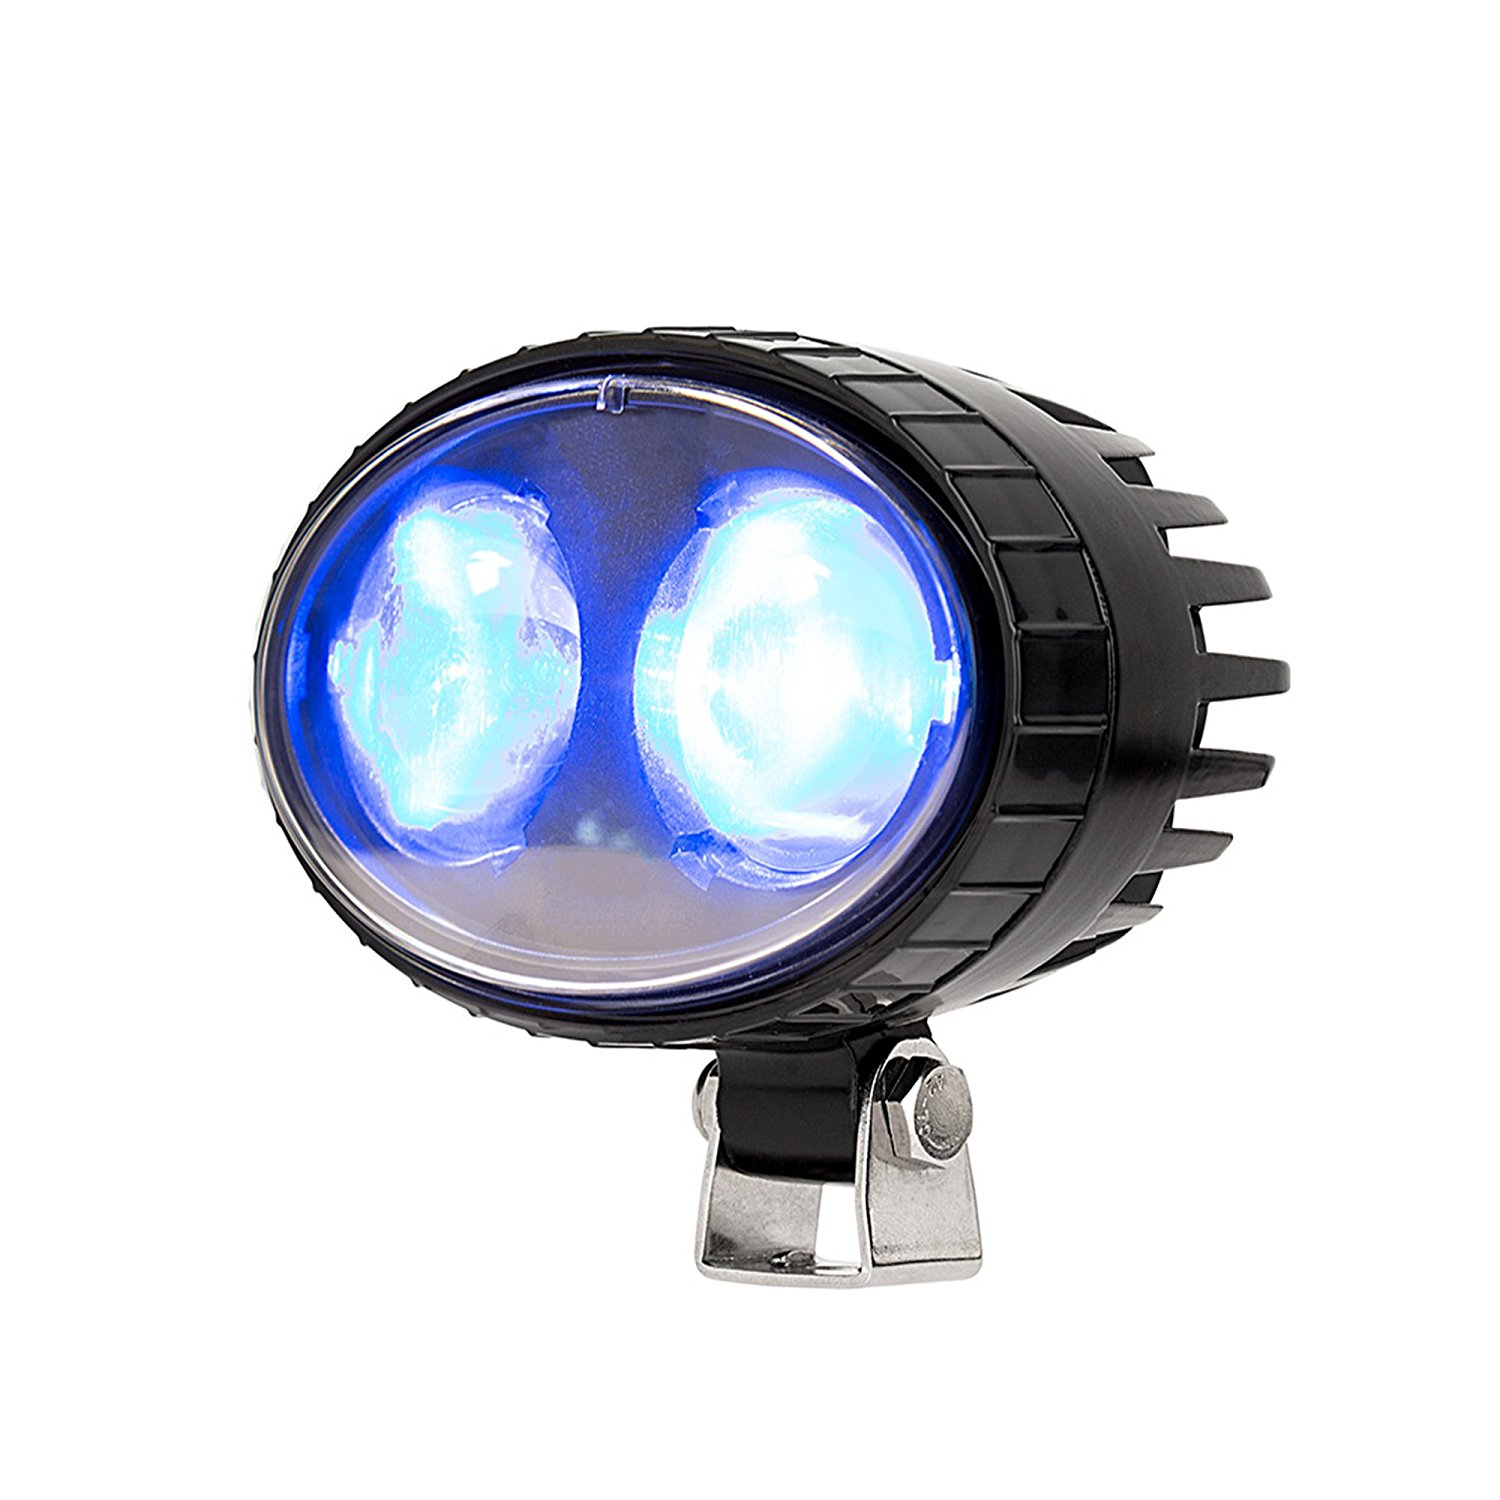 Forklift Blue LED Safety Warning Light, Blue Spot Forklift Pedestrian Warning Lighs,Forklift Blue Safety Light 6W 10-80V 12Months Warranty IP68(Blue)